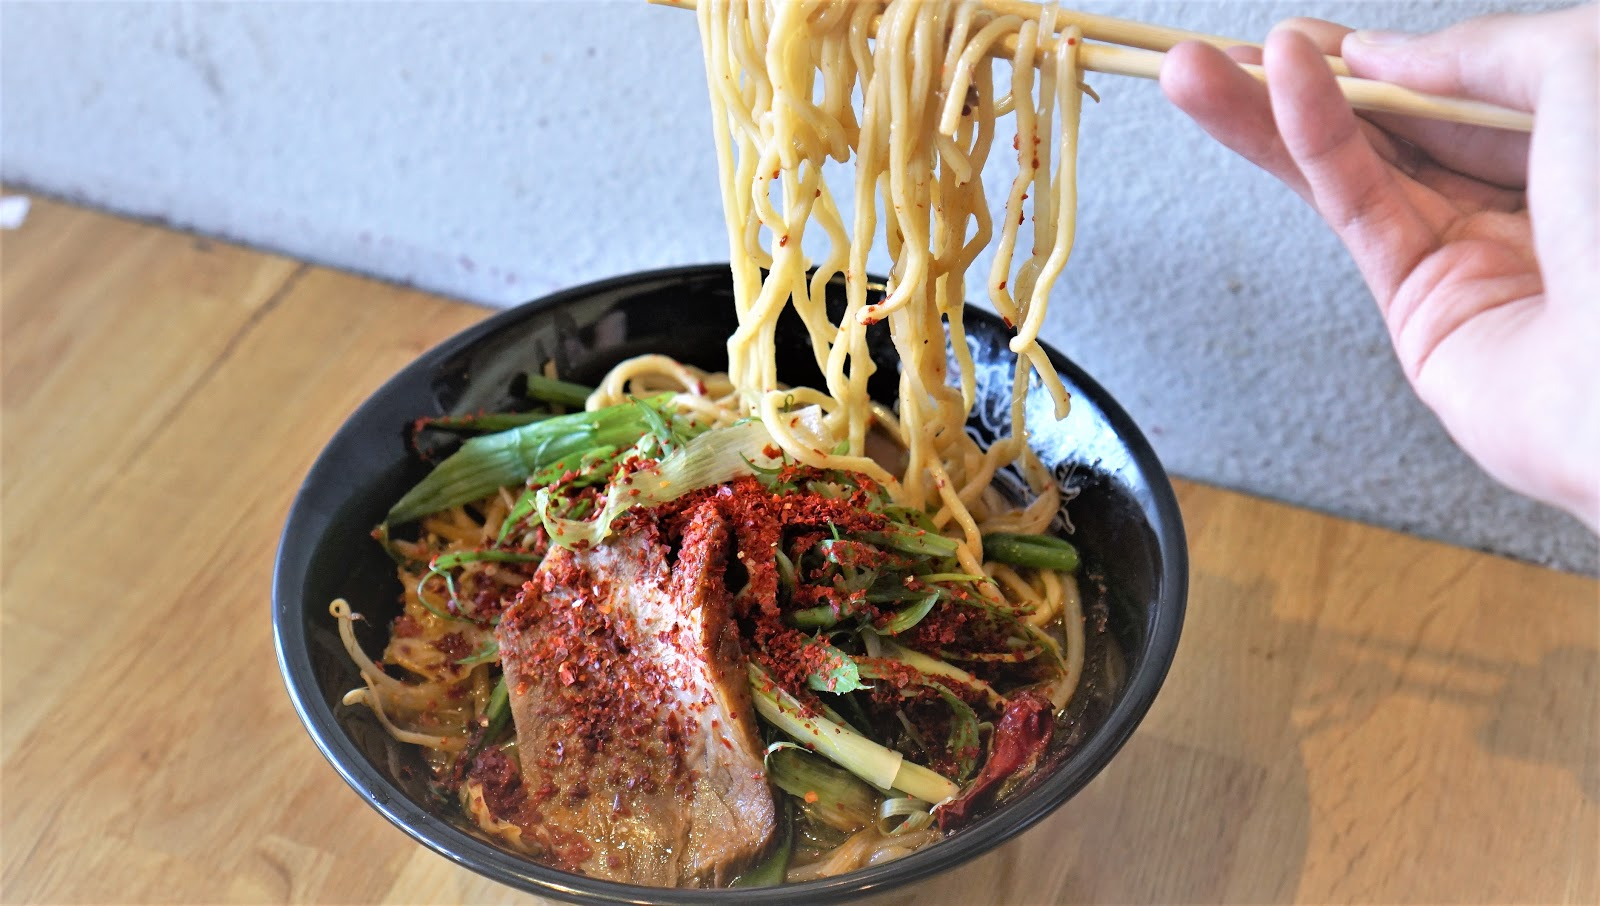 Dec. 9 - 10 | Ramen Izakaya Ajido in Torrance Debuts New Szechuan Ramen - Offers 50% Off Entire Ramen Menu